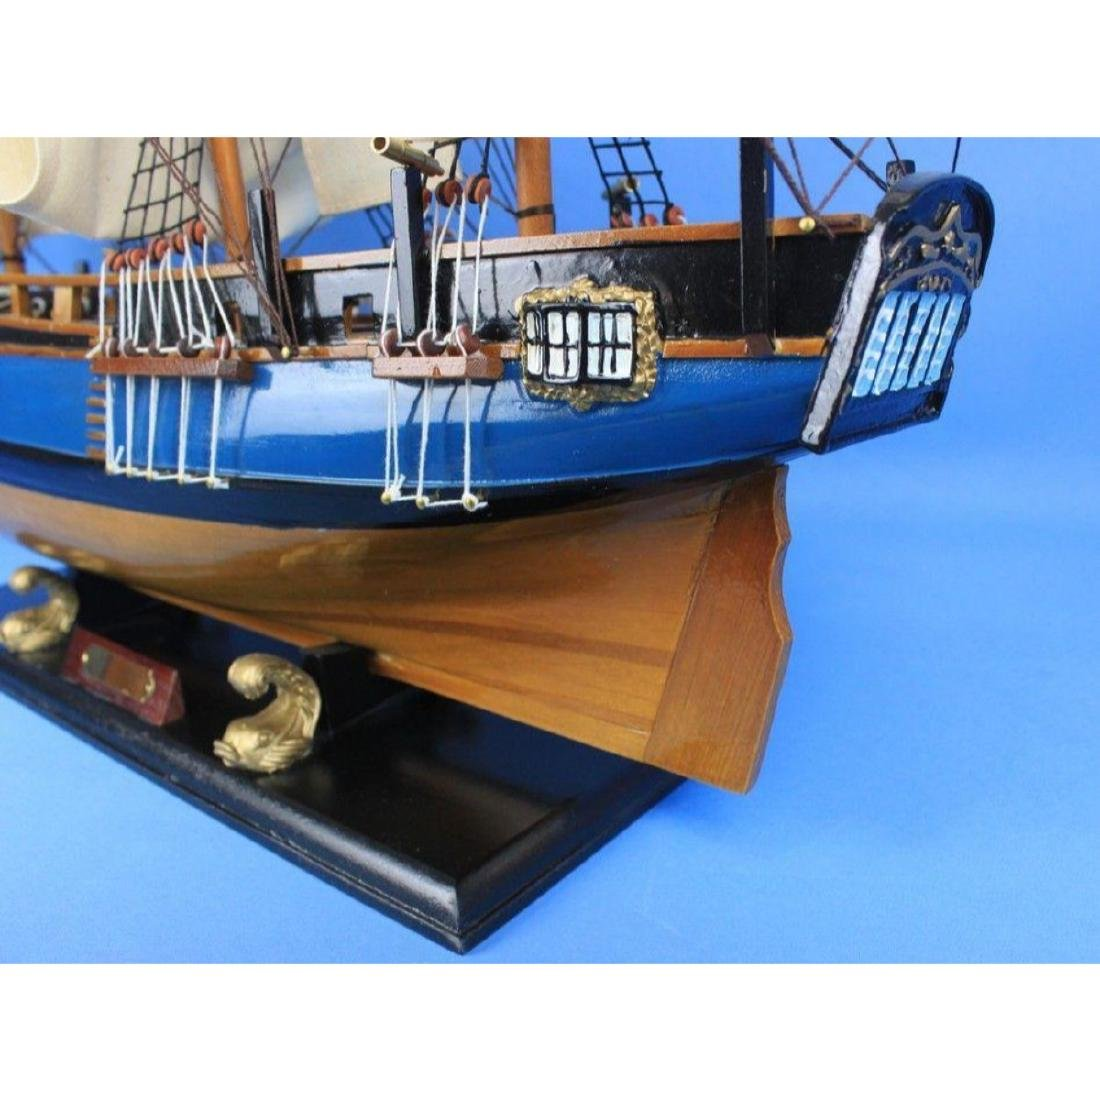 "Wooden HMS Bounty Tall Model Ship 34"" - 2"